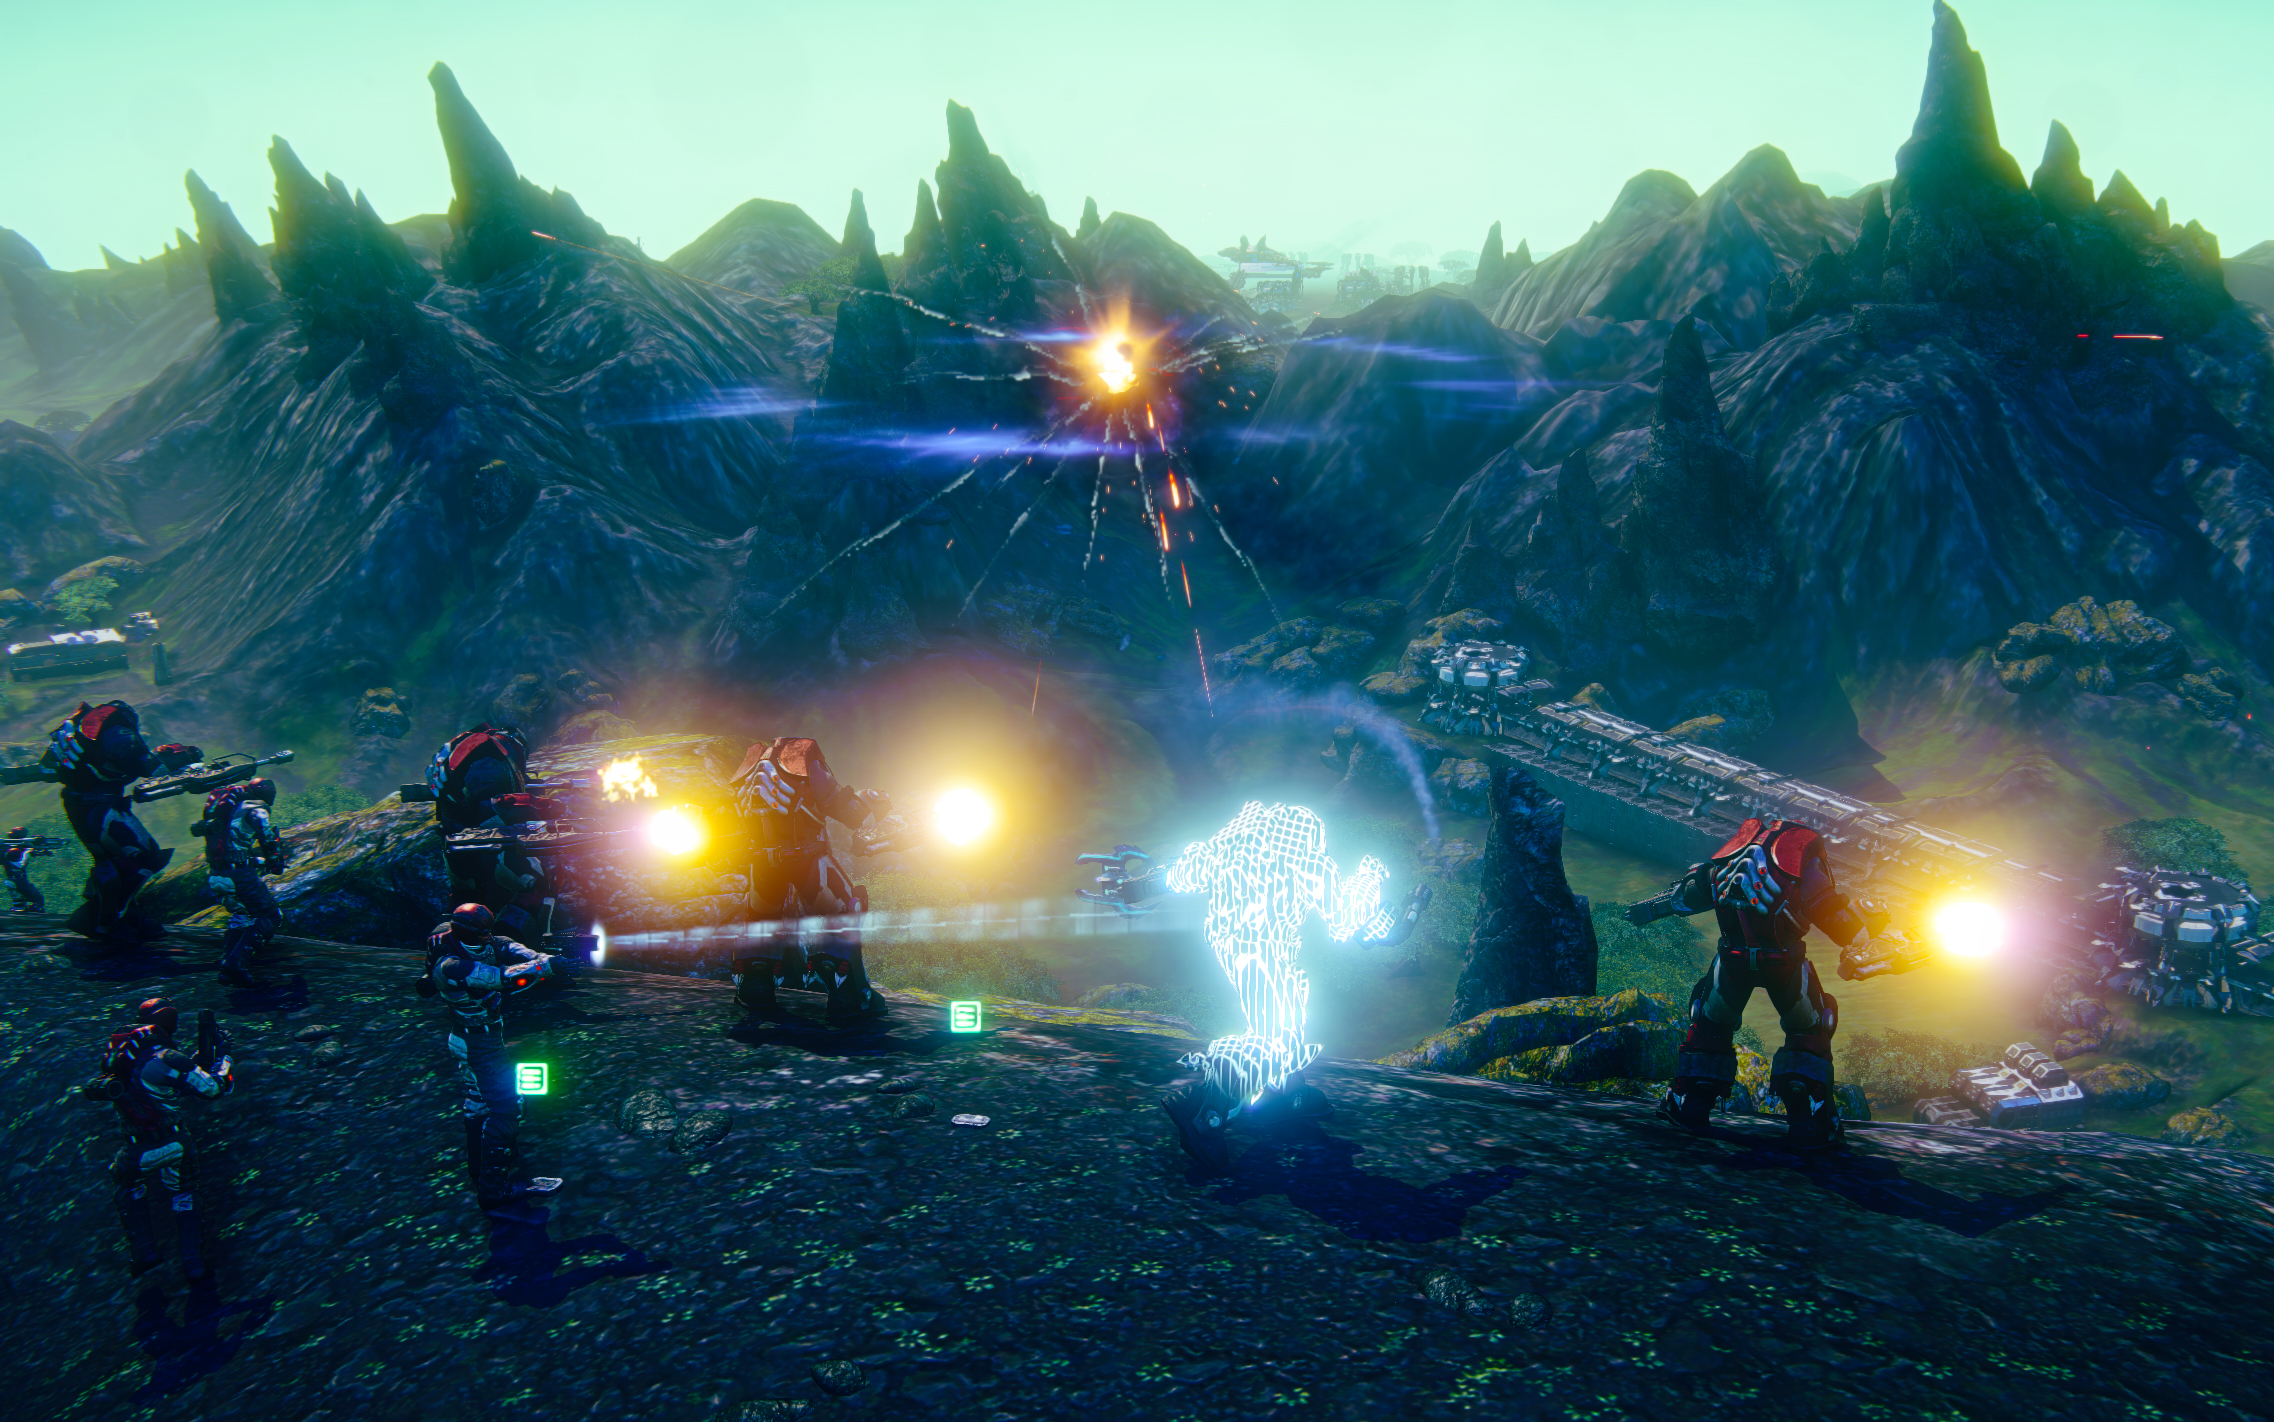 A screenshot from PlanetSide 2, which is expected to launch this month on Sony's PlayStation 4 console.